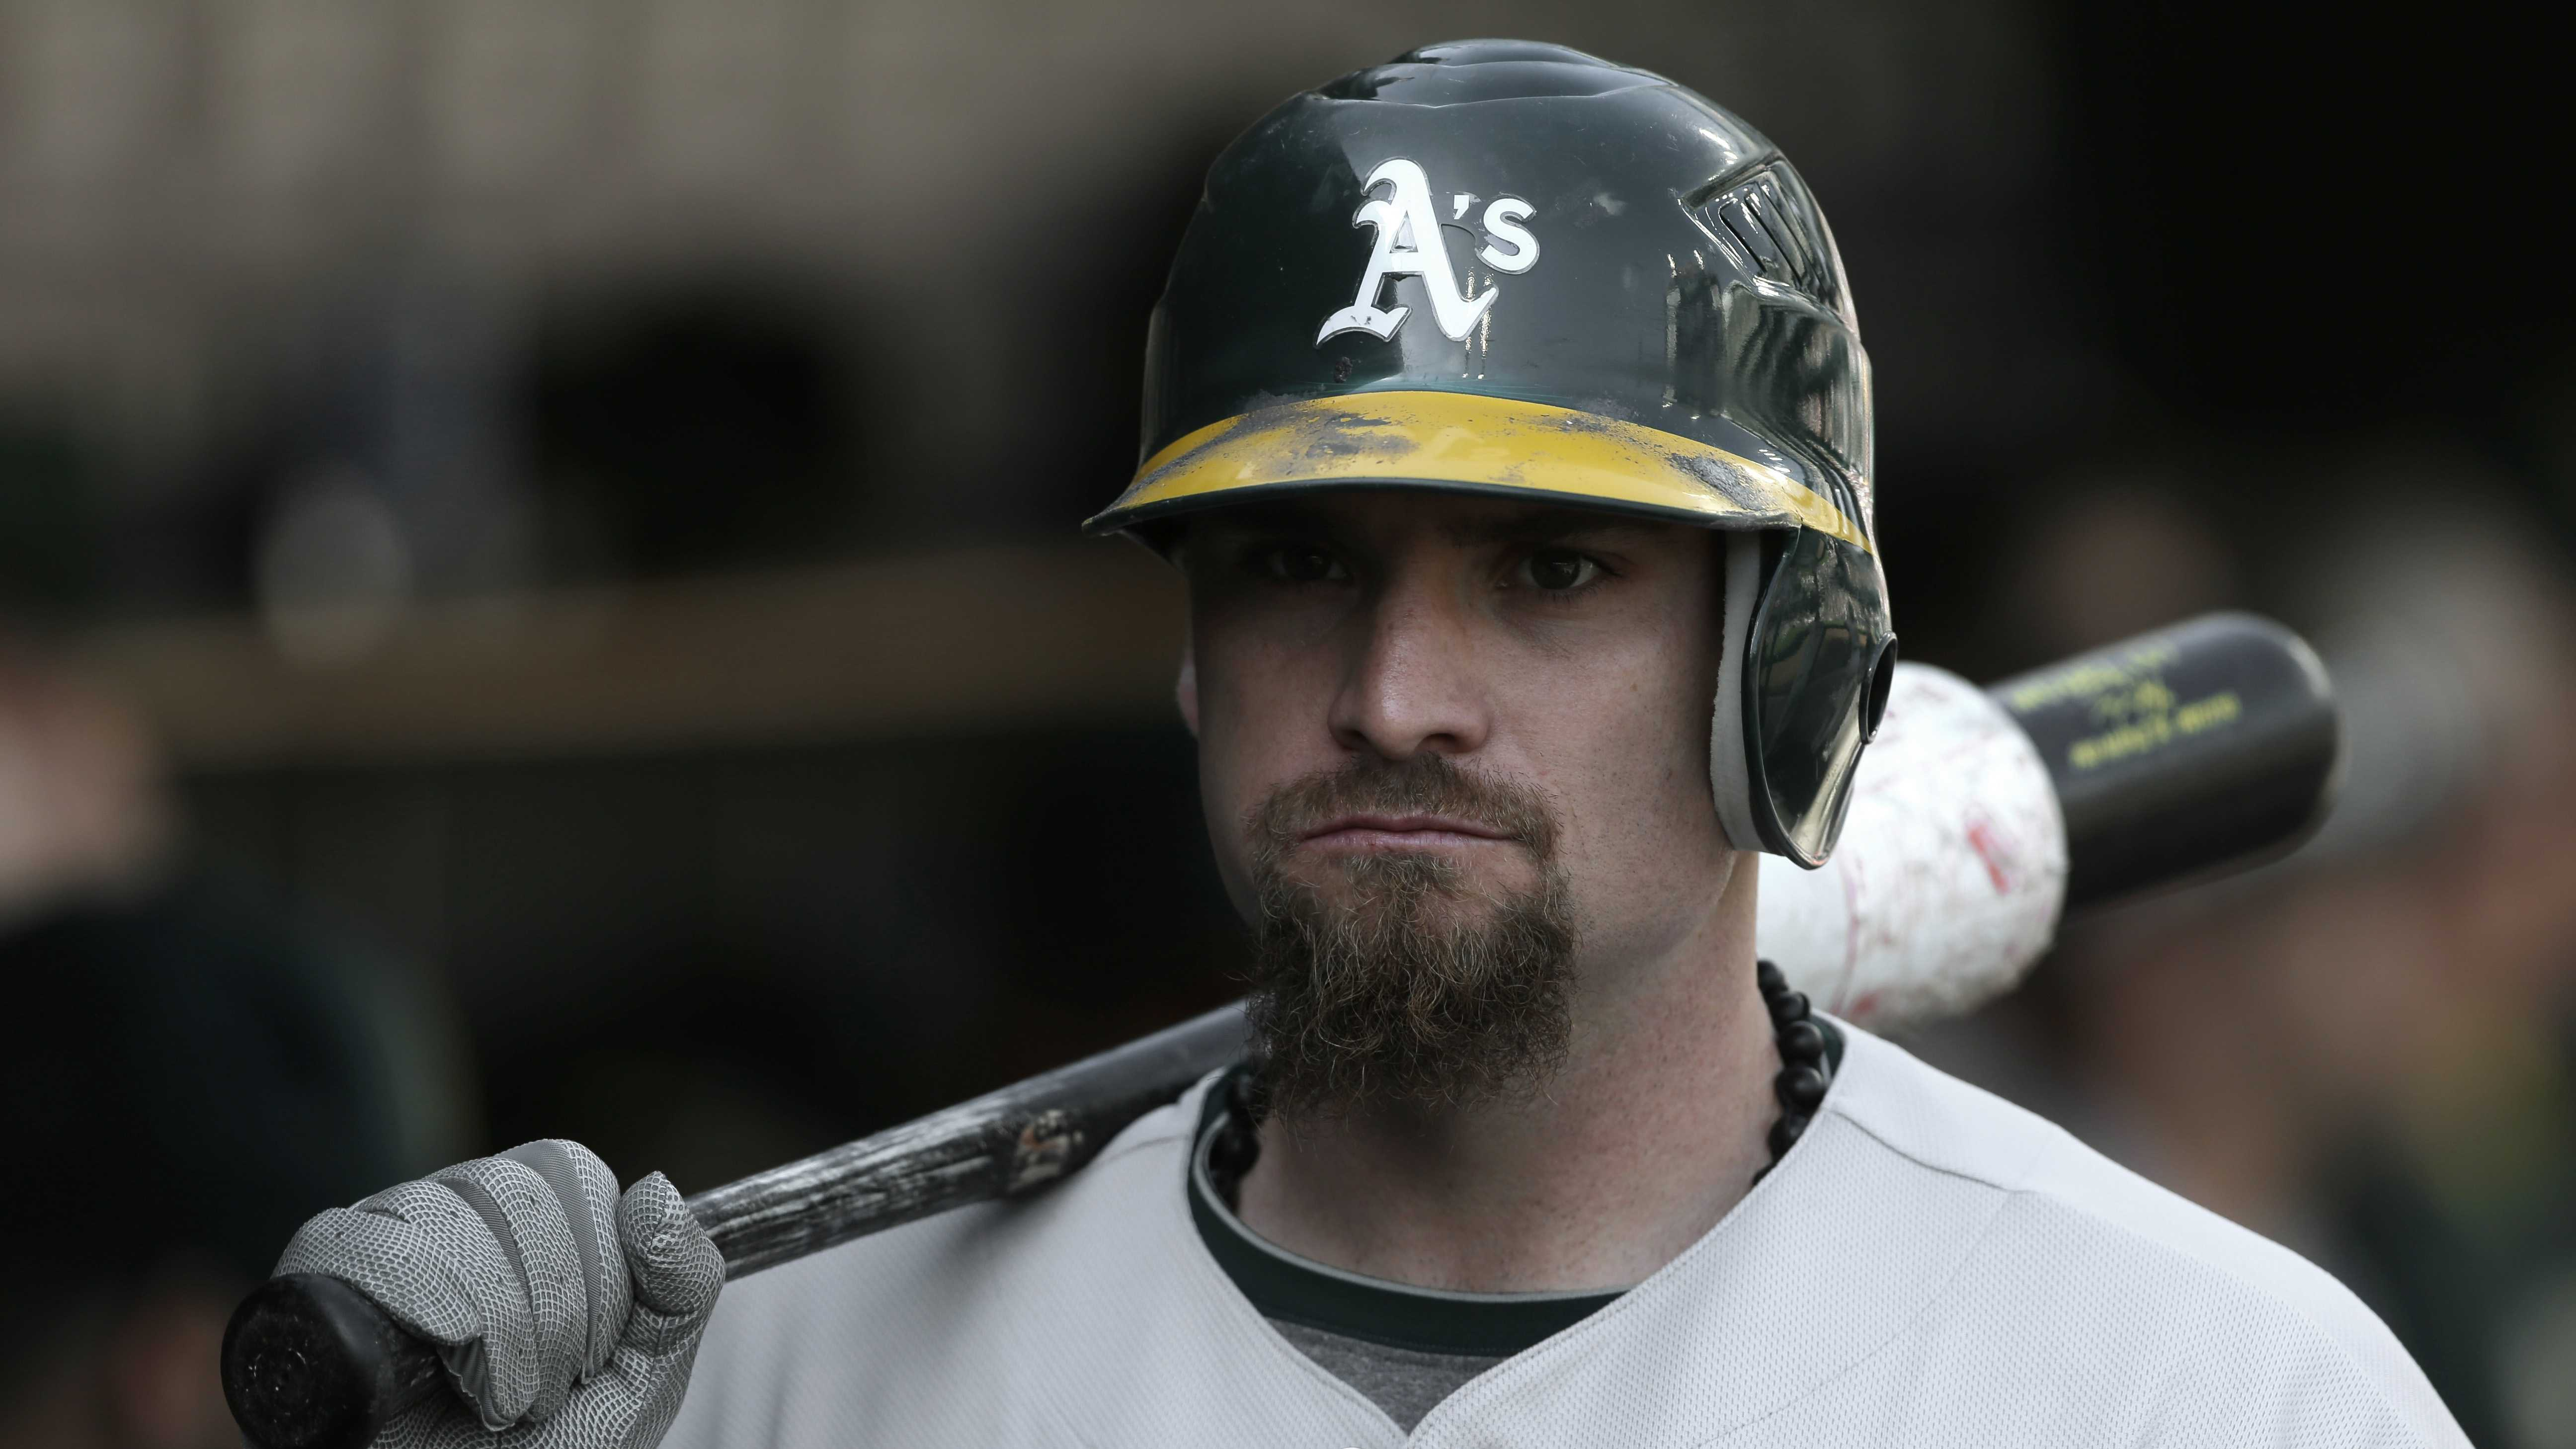 Oakland Athletics' Jonny Gomes waits to bat against the Detroit Tigers in the ninth inning of a baseball game in Detroit, Thursday, Sept. 20, 2012.